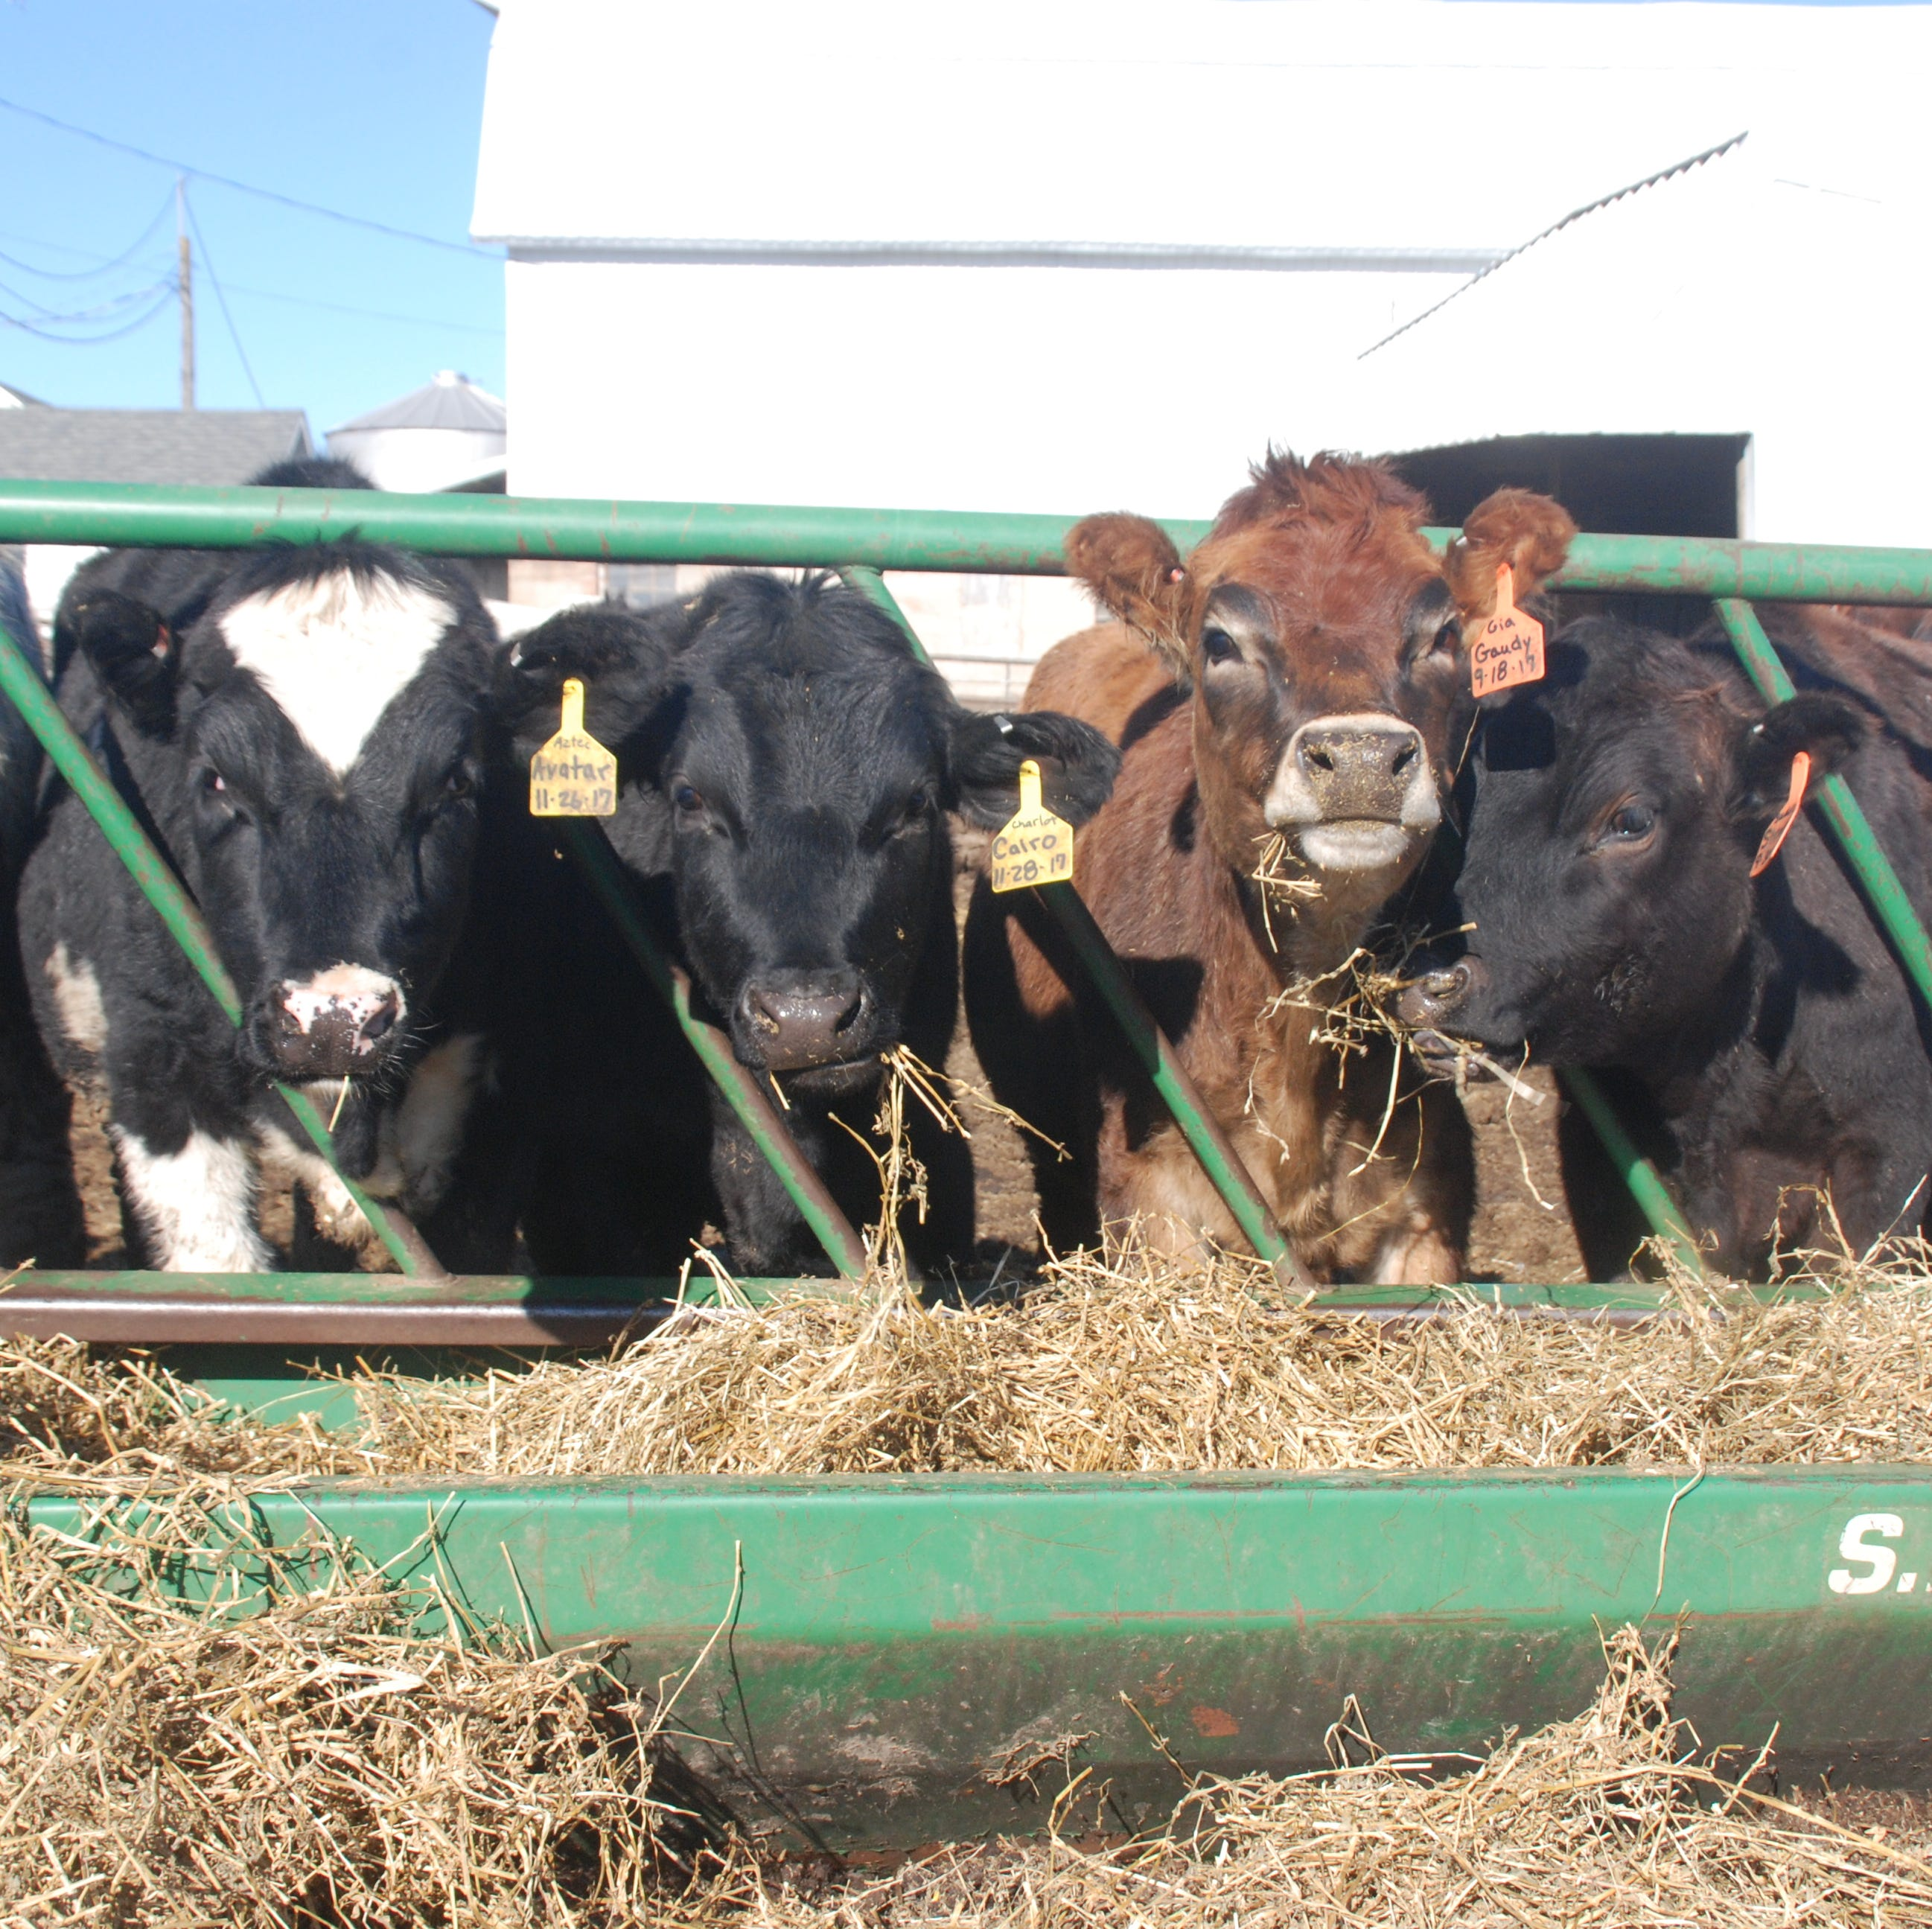 State approval of manure spreading on snowy ground has environmental group worried about water pollution